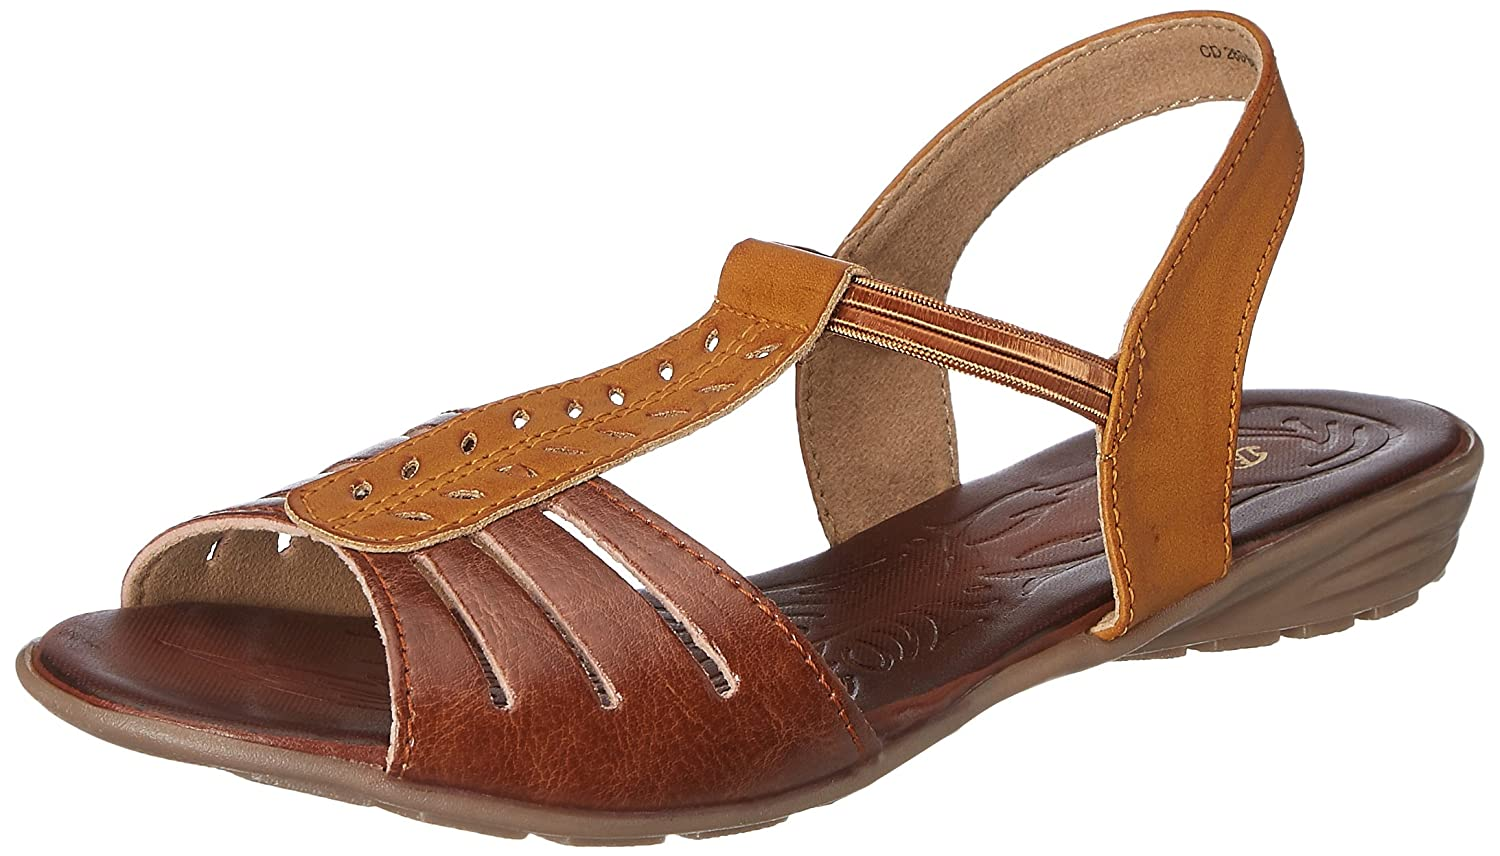 7e8114e96 BATA Women s Fashion Sandals  Buy Online at Low Prices in India - Amazon.in